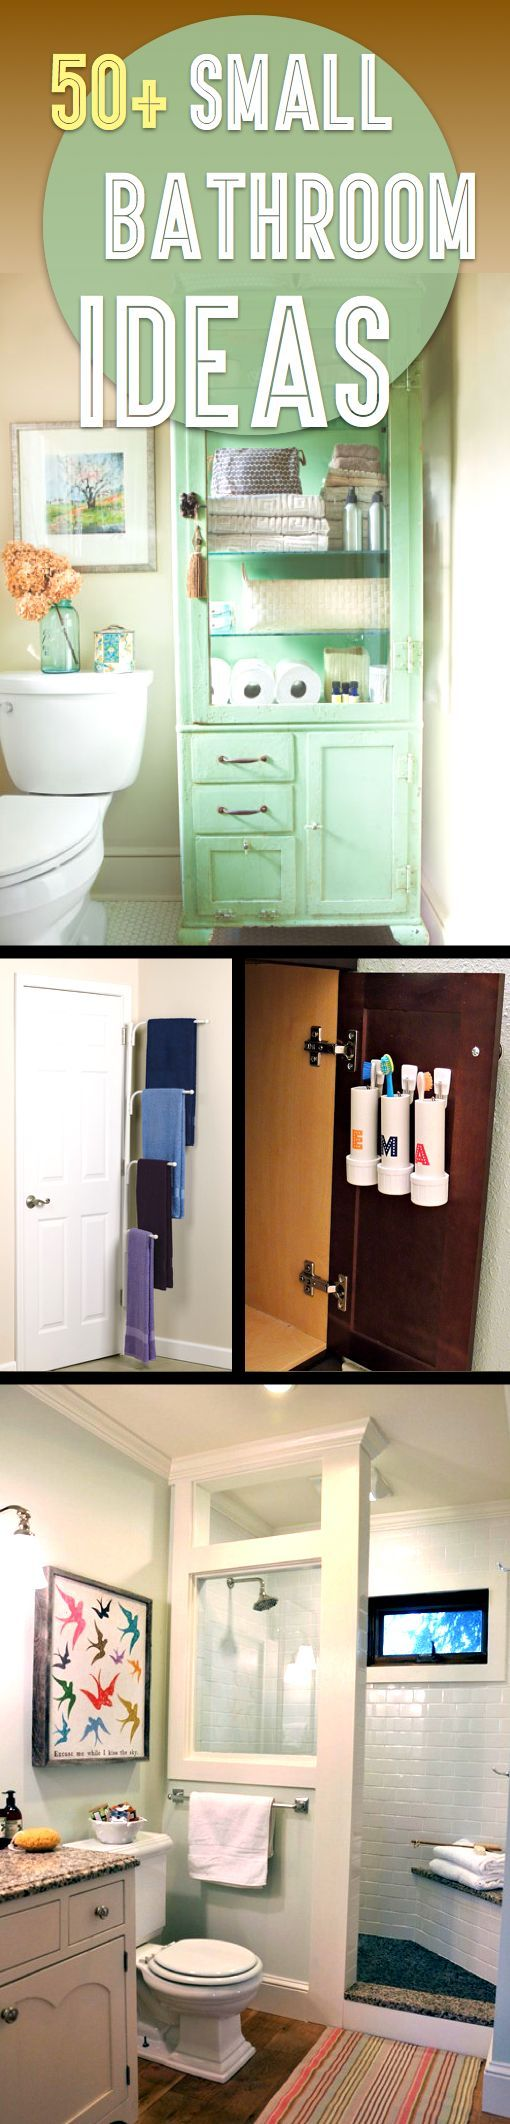 Ideas to Organize and Decorate a small bathroom